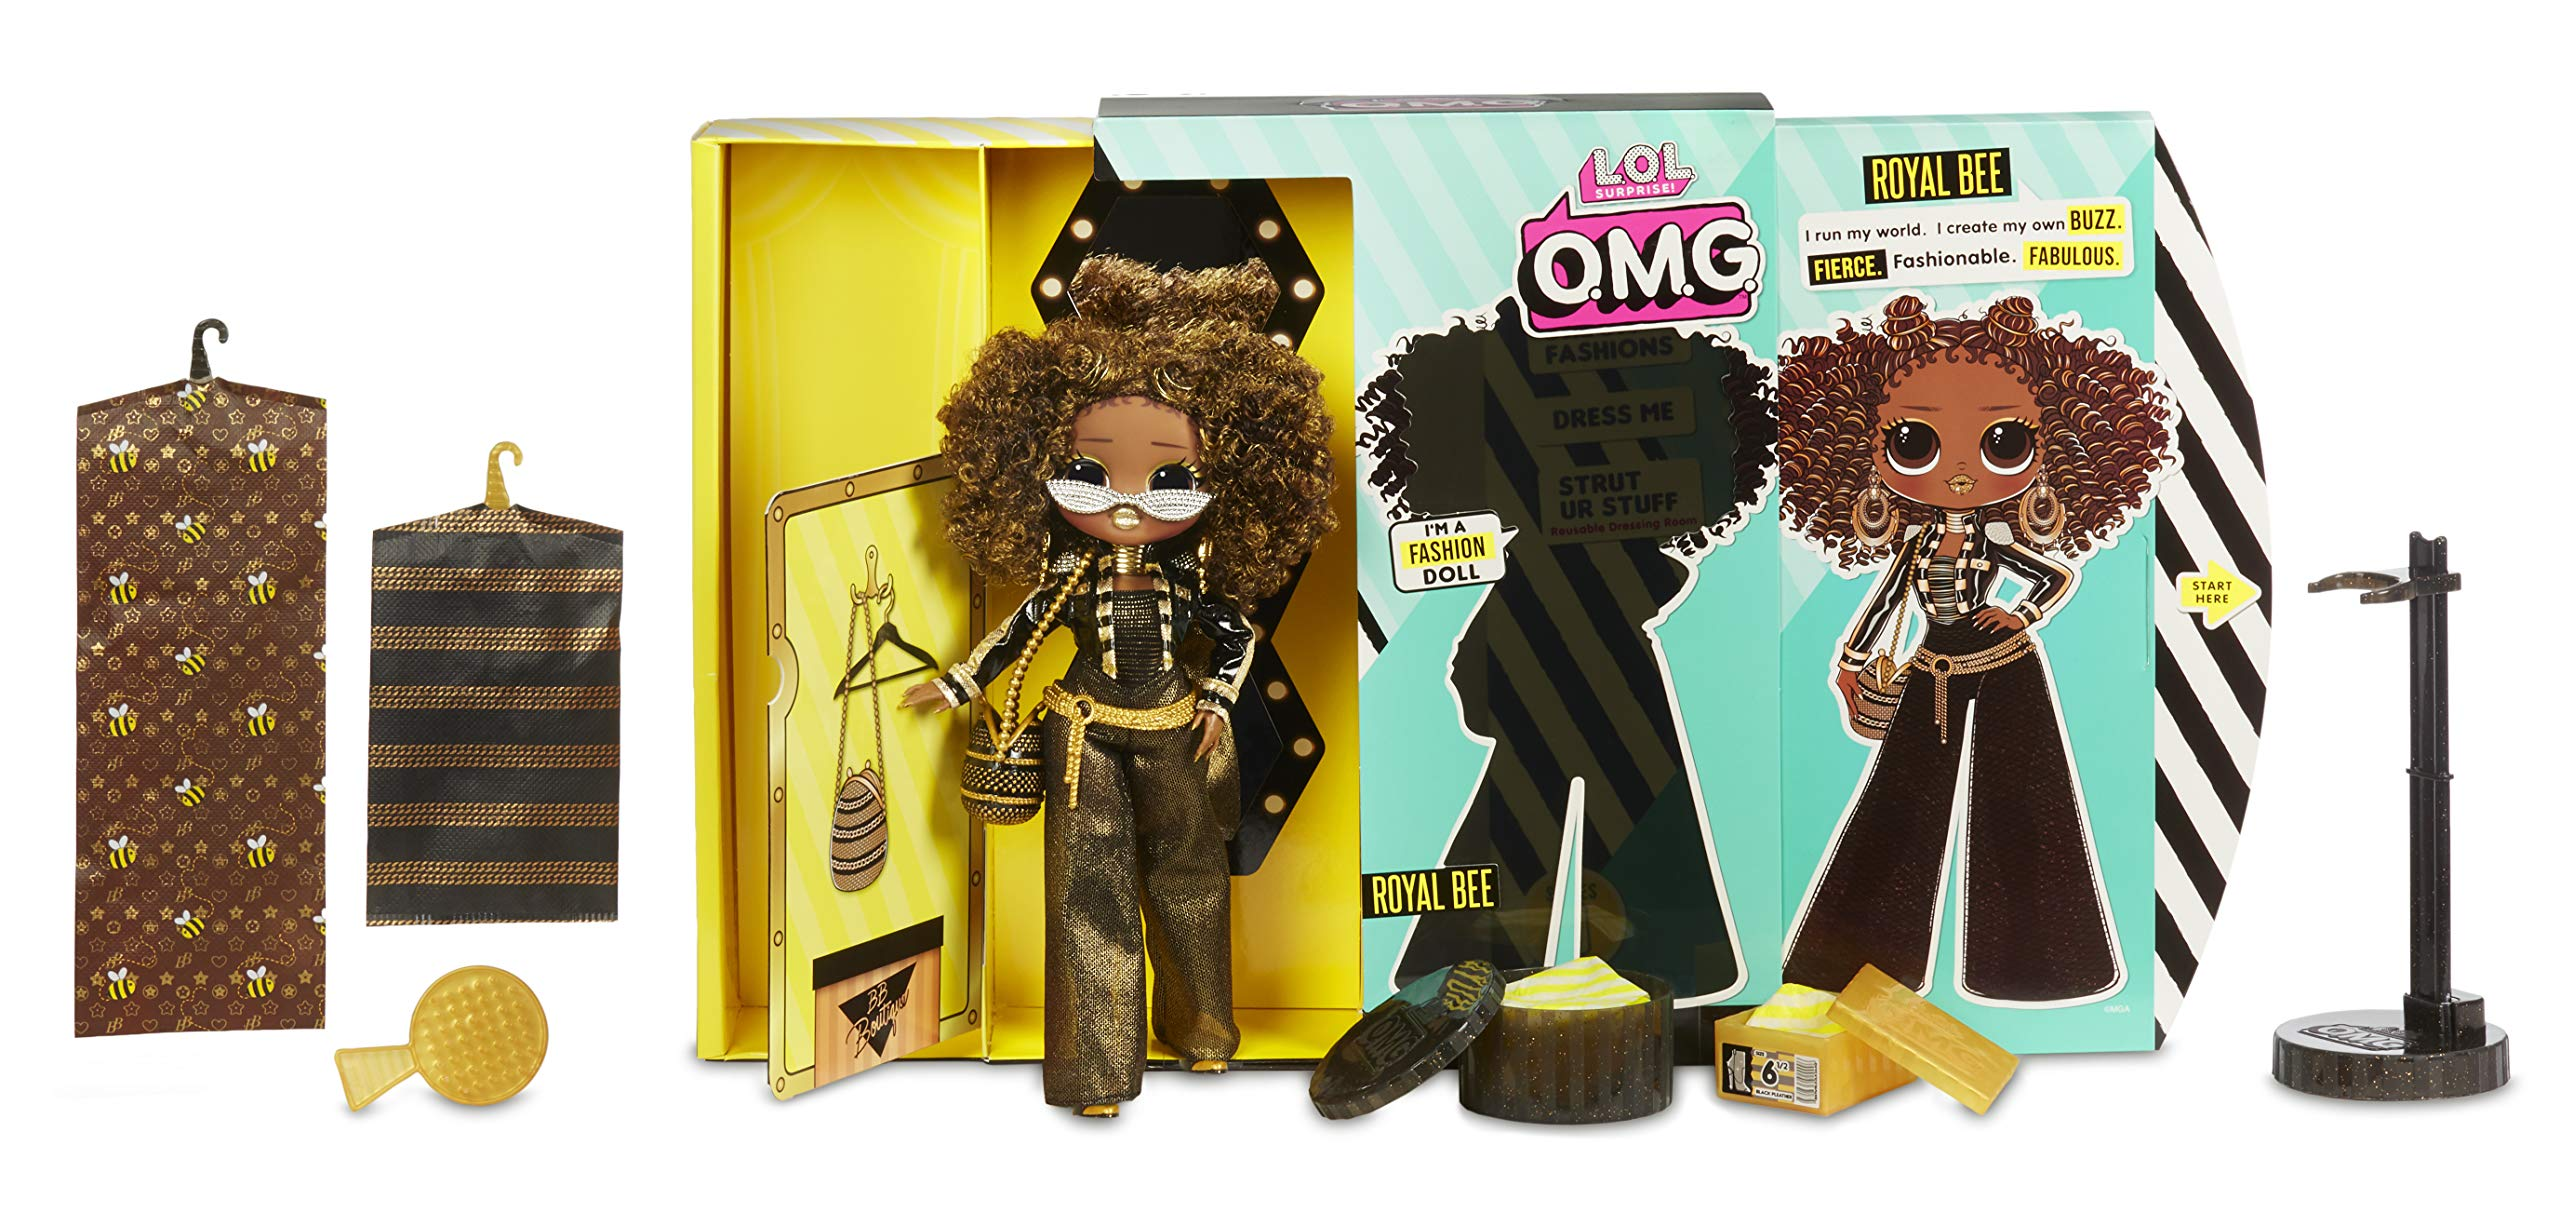 LOL OMG Fashion Doll SET Of 4  ~ 20 Surprises  ROYAL BEE Neonlicious SWAG Diva